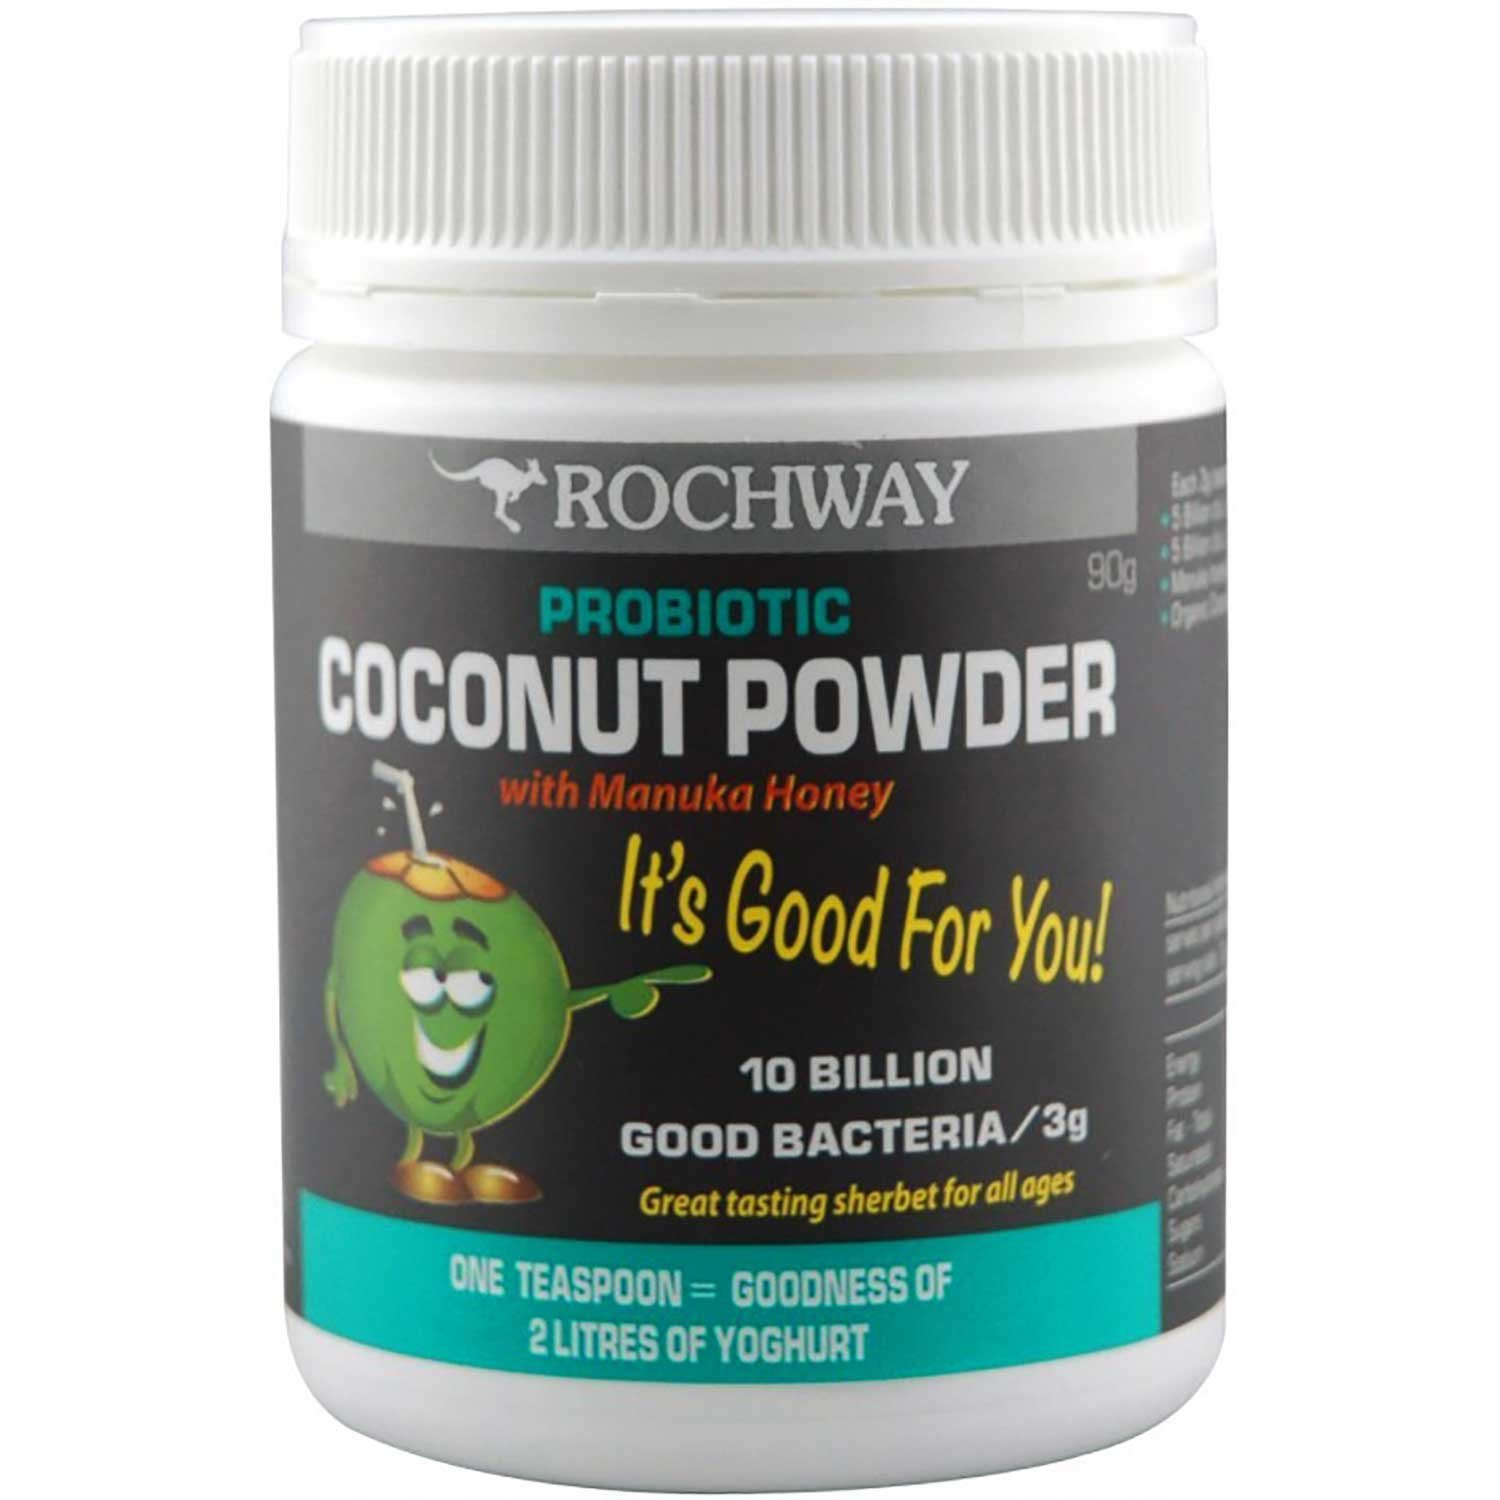 Rochway Coconut Powder w/ Manuka Honey Probiotic, Powder, 90g